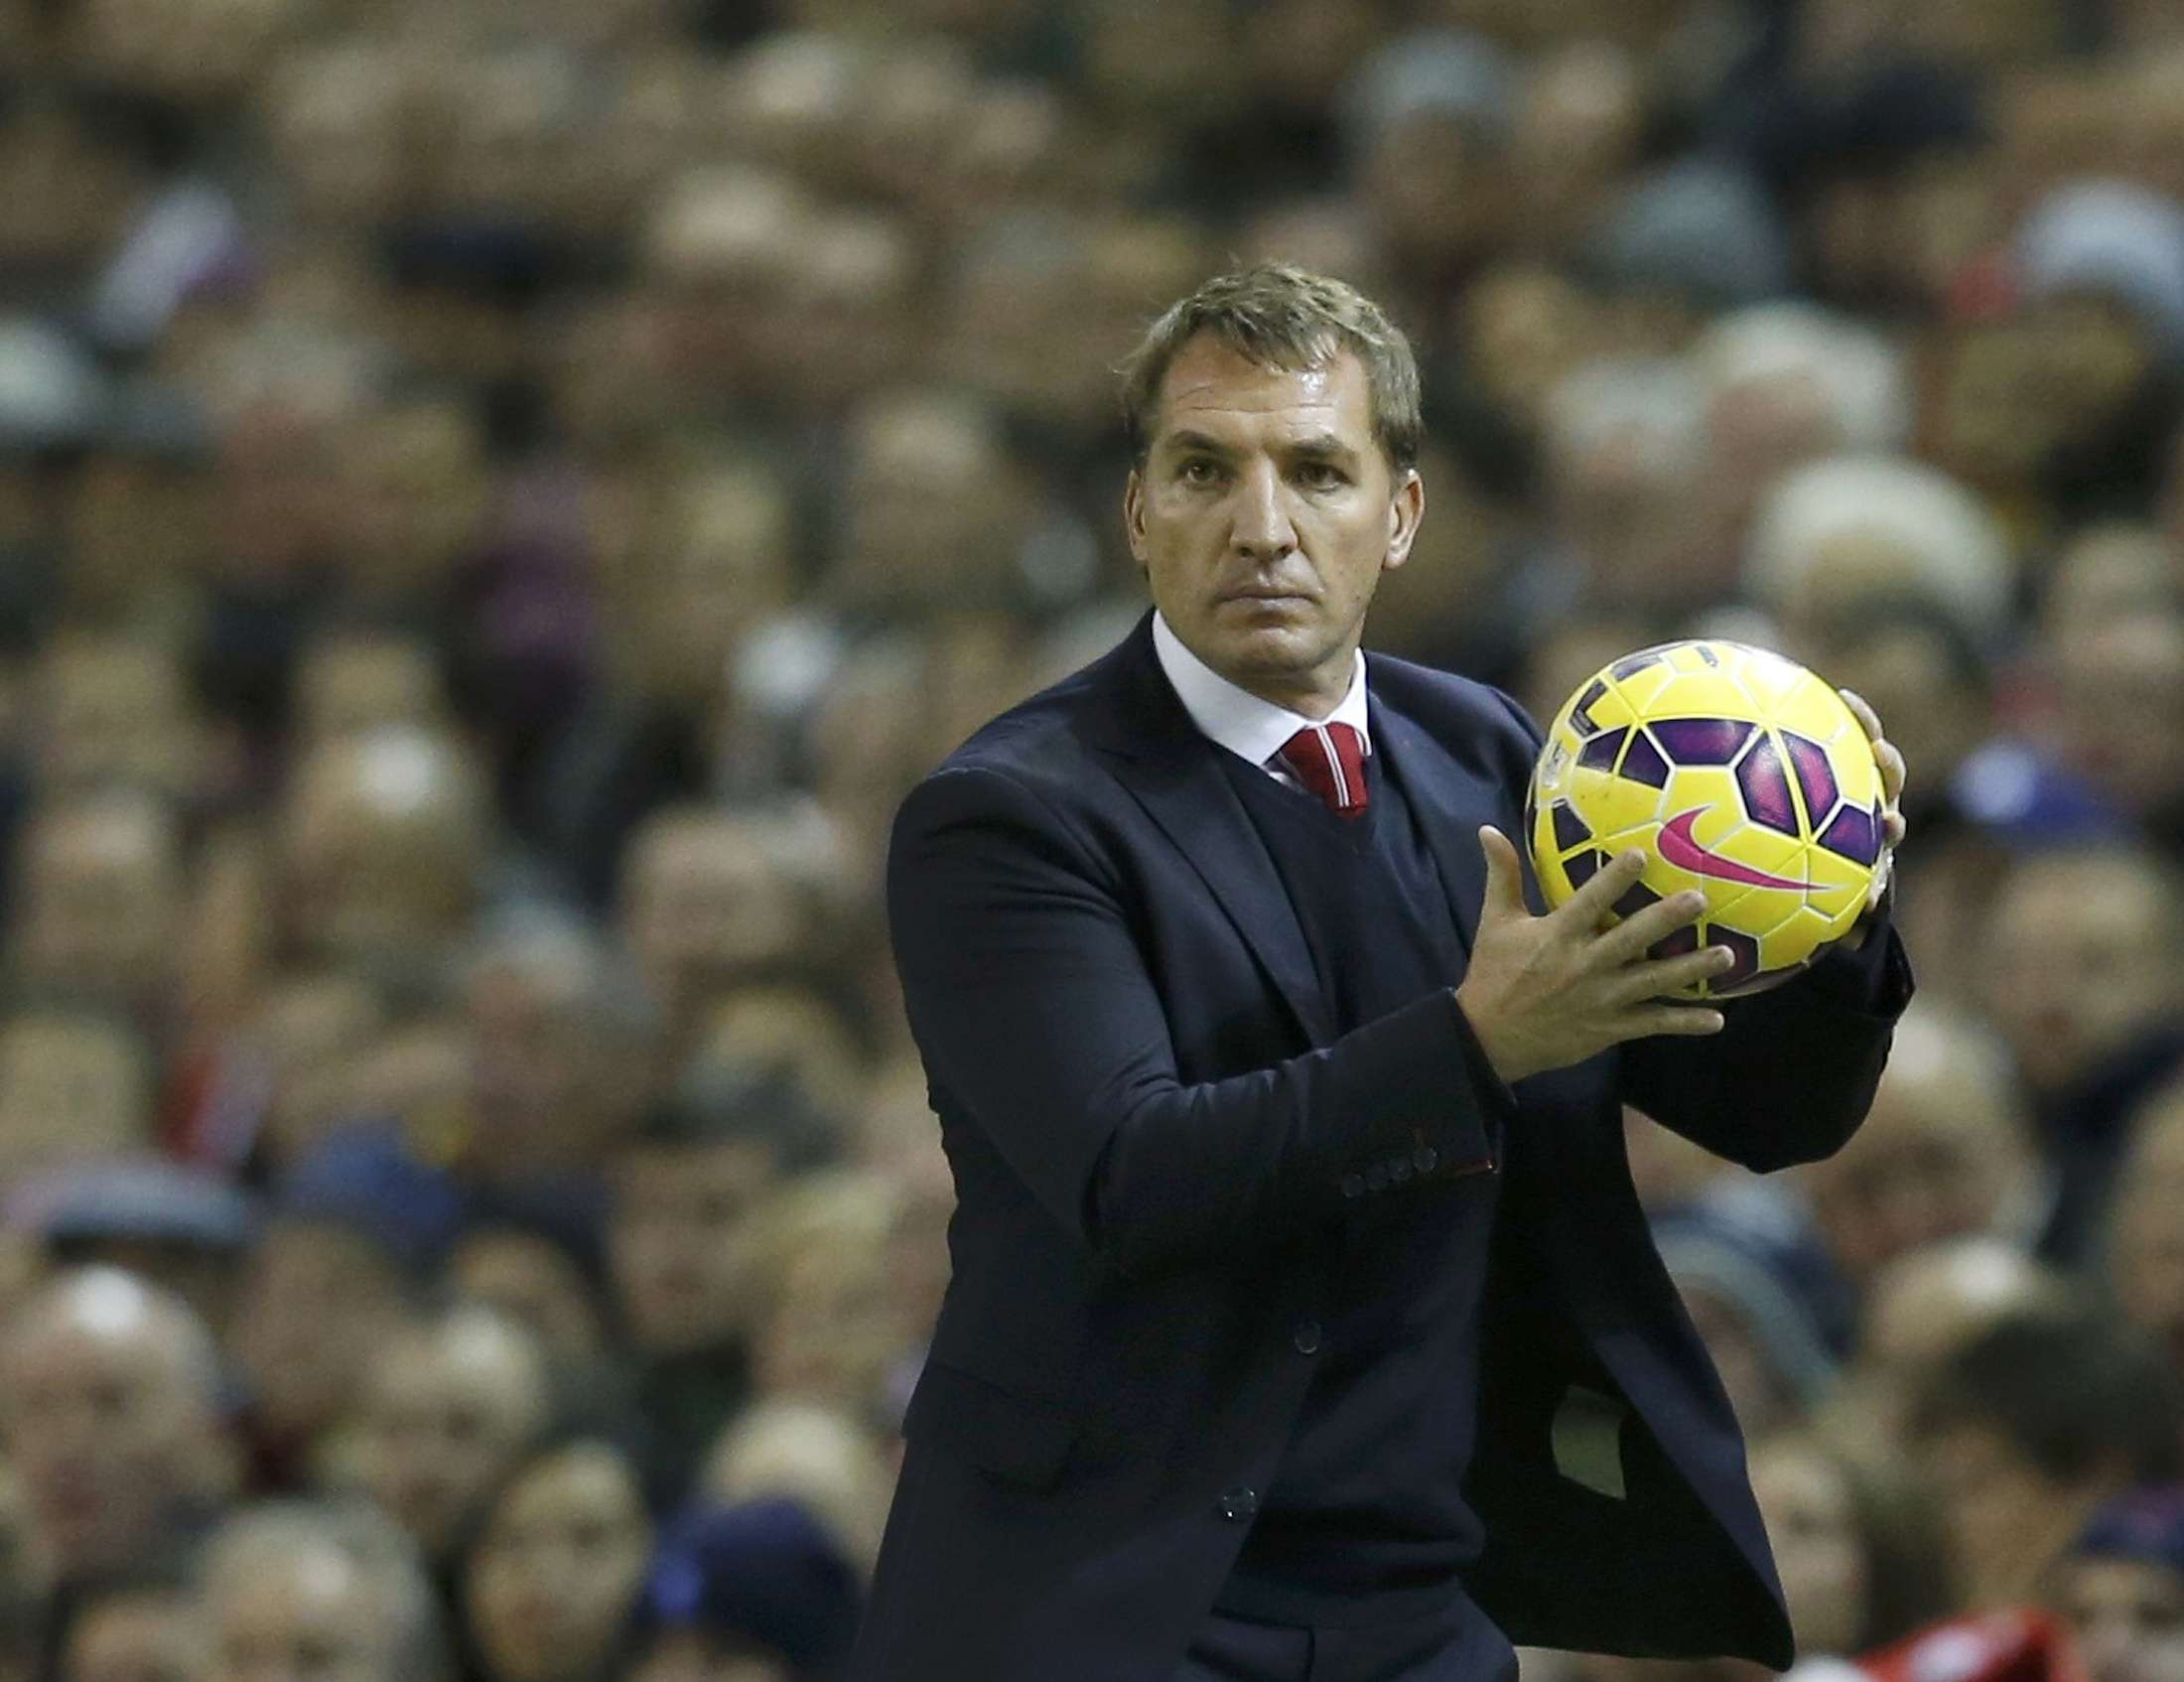 Liverpool manager Brendan Rodgers catches the ball during their English Premier League soccer match against Arsenal at Anfield in Liverpool, northern England December 21, 2014. REUTERS/Phil Noble (BRITAIN - Tags: SOCCER SPORT) FOR EDITORIAL USE ONLY. NOT FOR SALE FOR MARKETING OR ADVERTISING CAMPAIGNS. EDITORIAL USE ONLY. NO USE WITH UNAUTHORIZED AUDIO, VIDEO, DATA, FIXTURE LISTS, CLUB/LEAGUE LOGOS OR 'LIVE' SERVICES. ONLINE IN-MATCH USE LIMITED TO 45 IMAGES, NO VIDEO EMULATION. NO USE IN BETTING, GAMES OR SINGLE CLUB/LEAGUE/PLAYER PUBLICATIONS. Foto: PHIL NOBLE/REUTERS